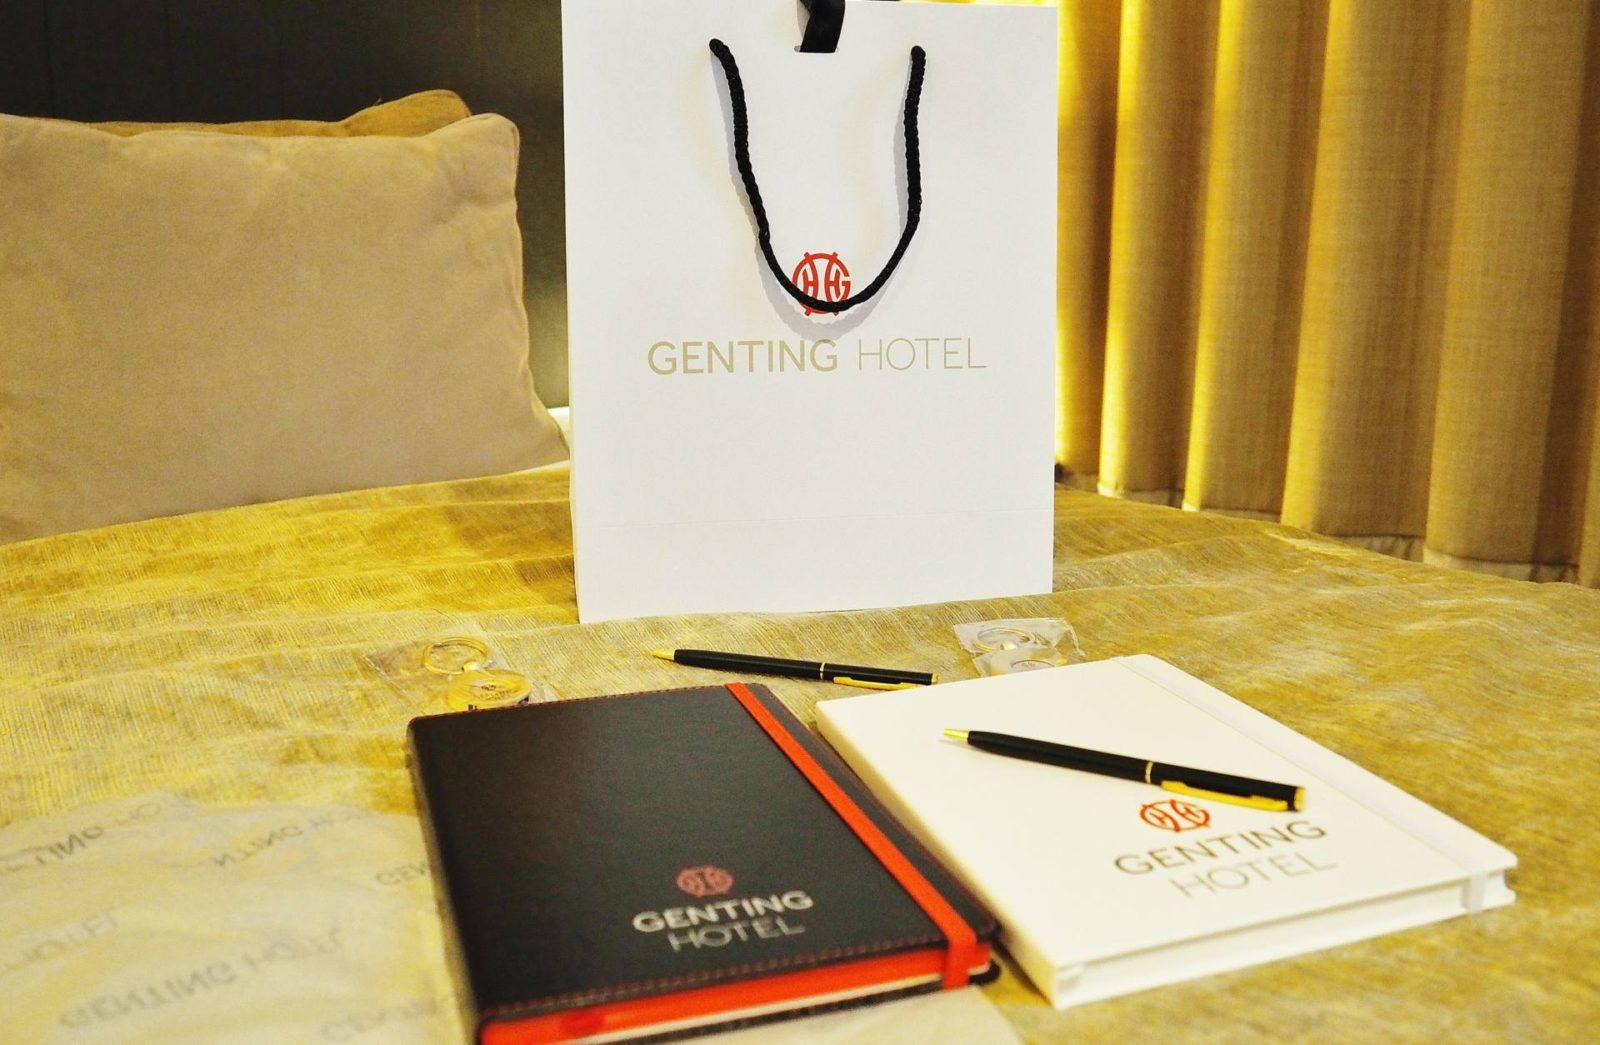 Genting Hotel Welcome Bag